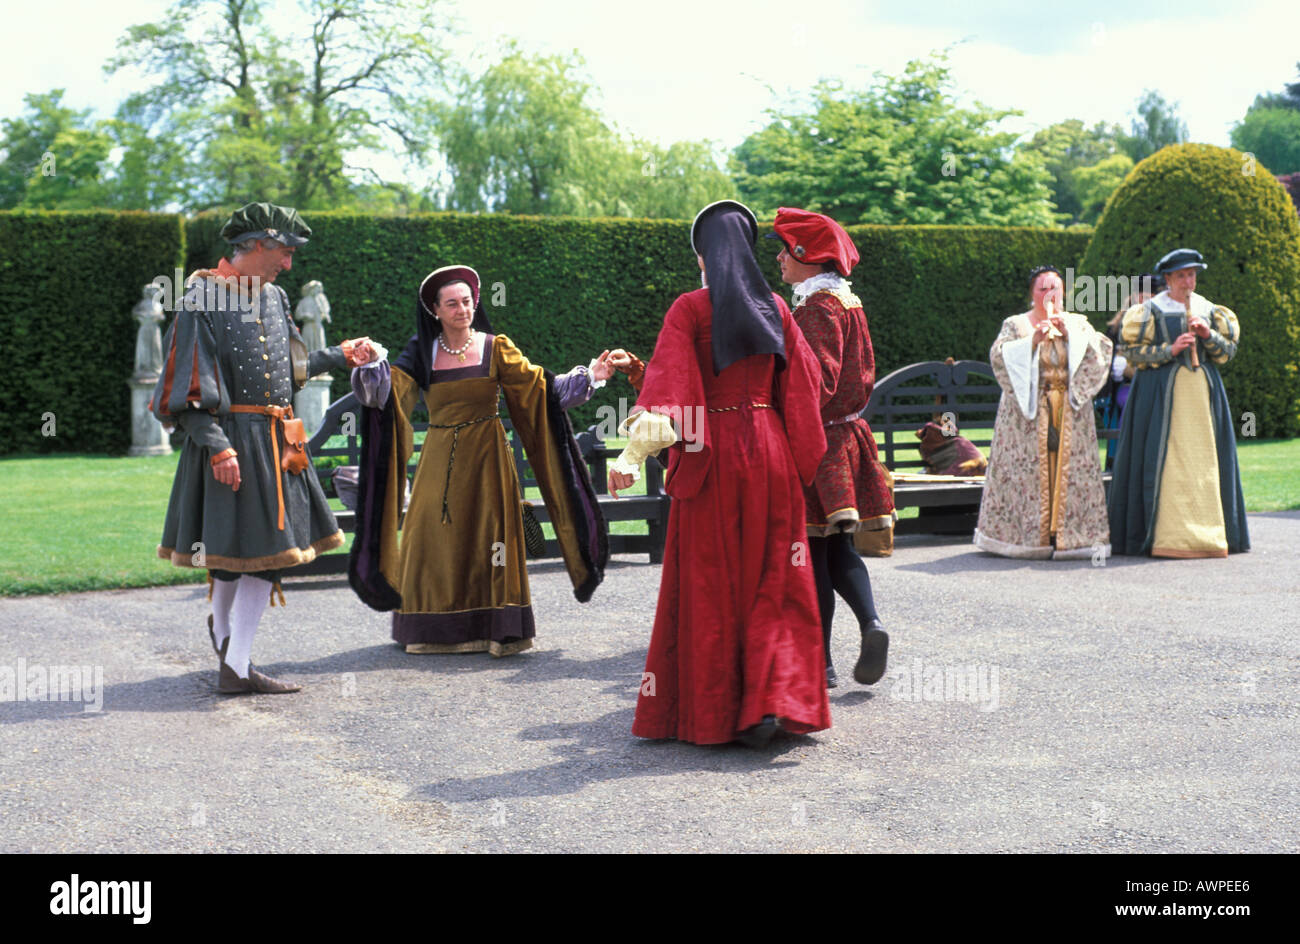 Elizabethan dancing in traditional costumes in Hever Castle Kent England - Stock Image